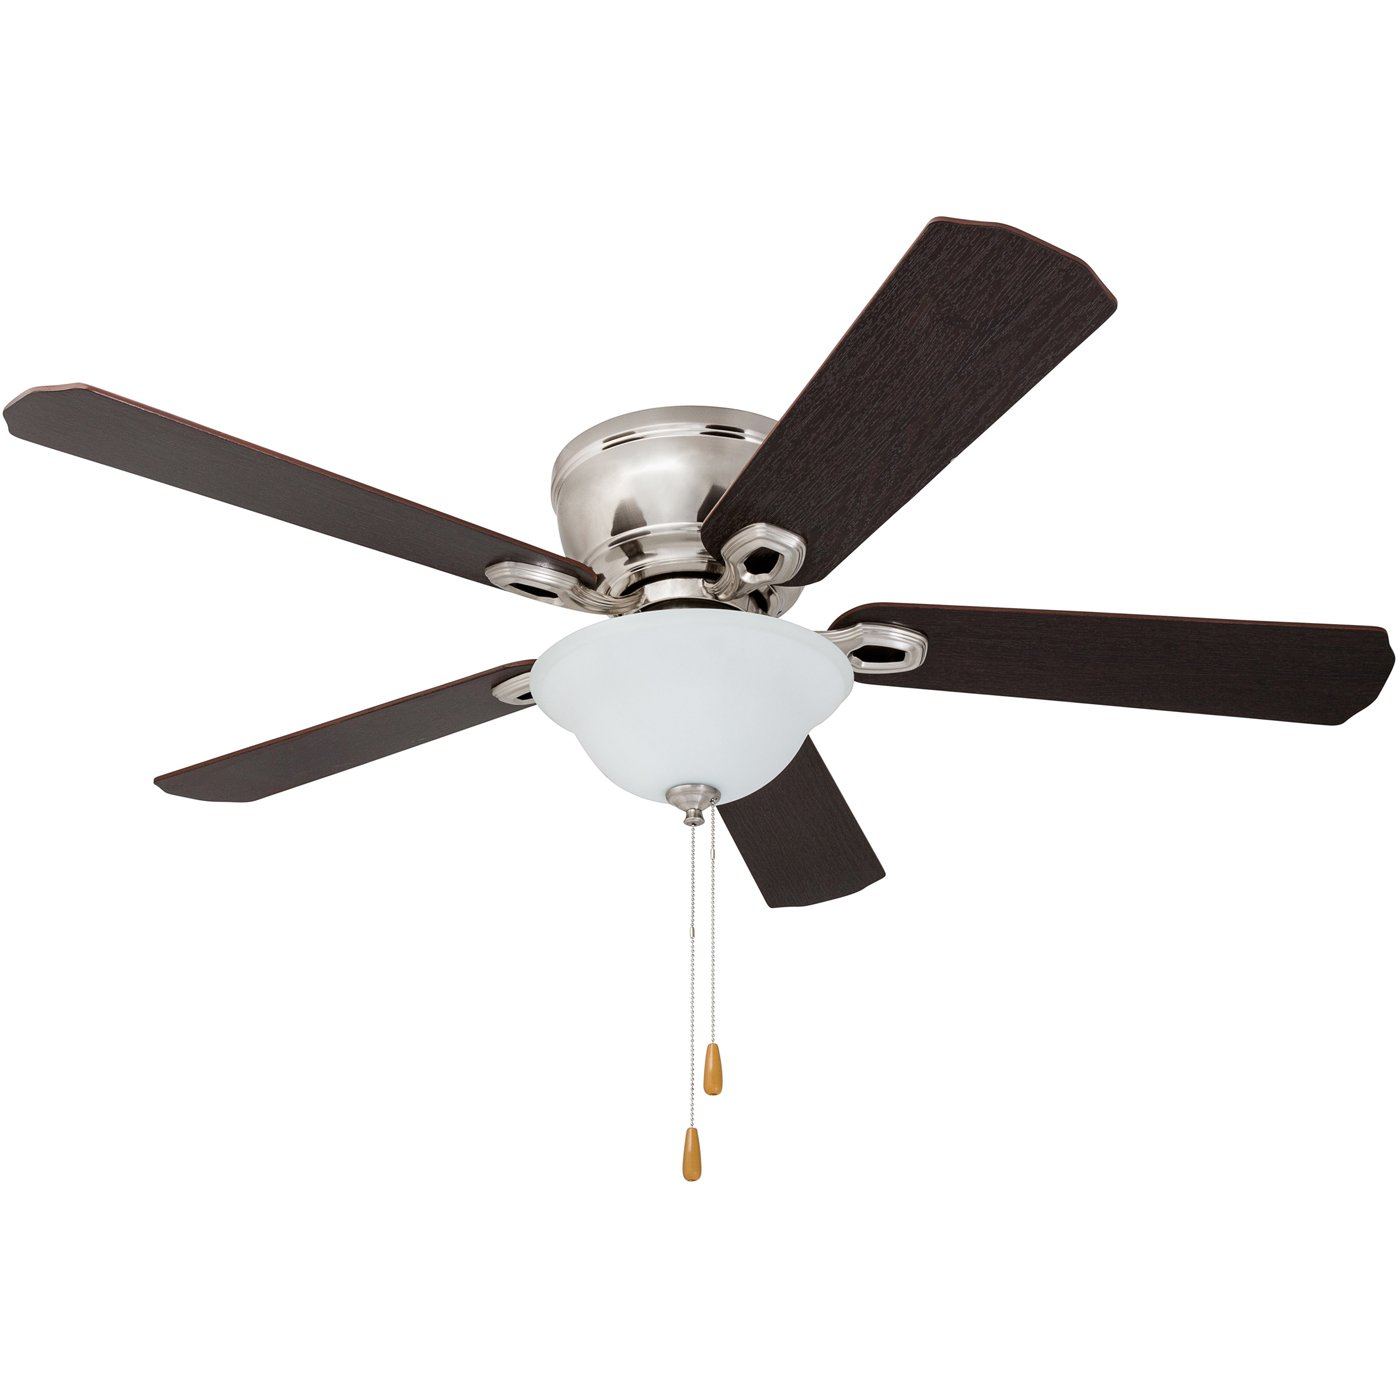 Prominence Home 80031-01 Woodmere Low-Profile Hugger Ceiling Fan